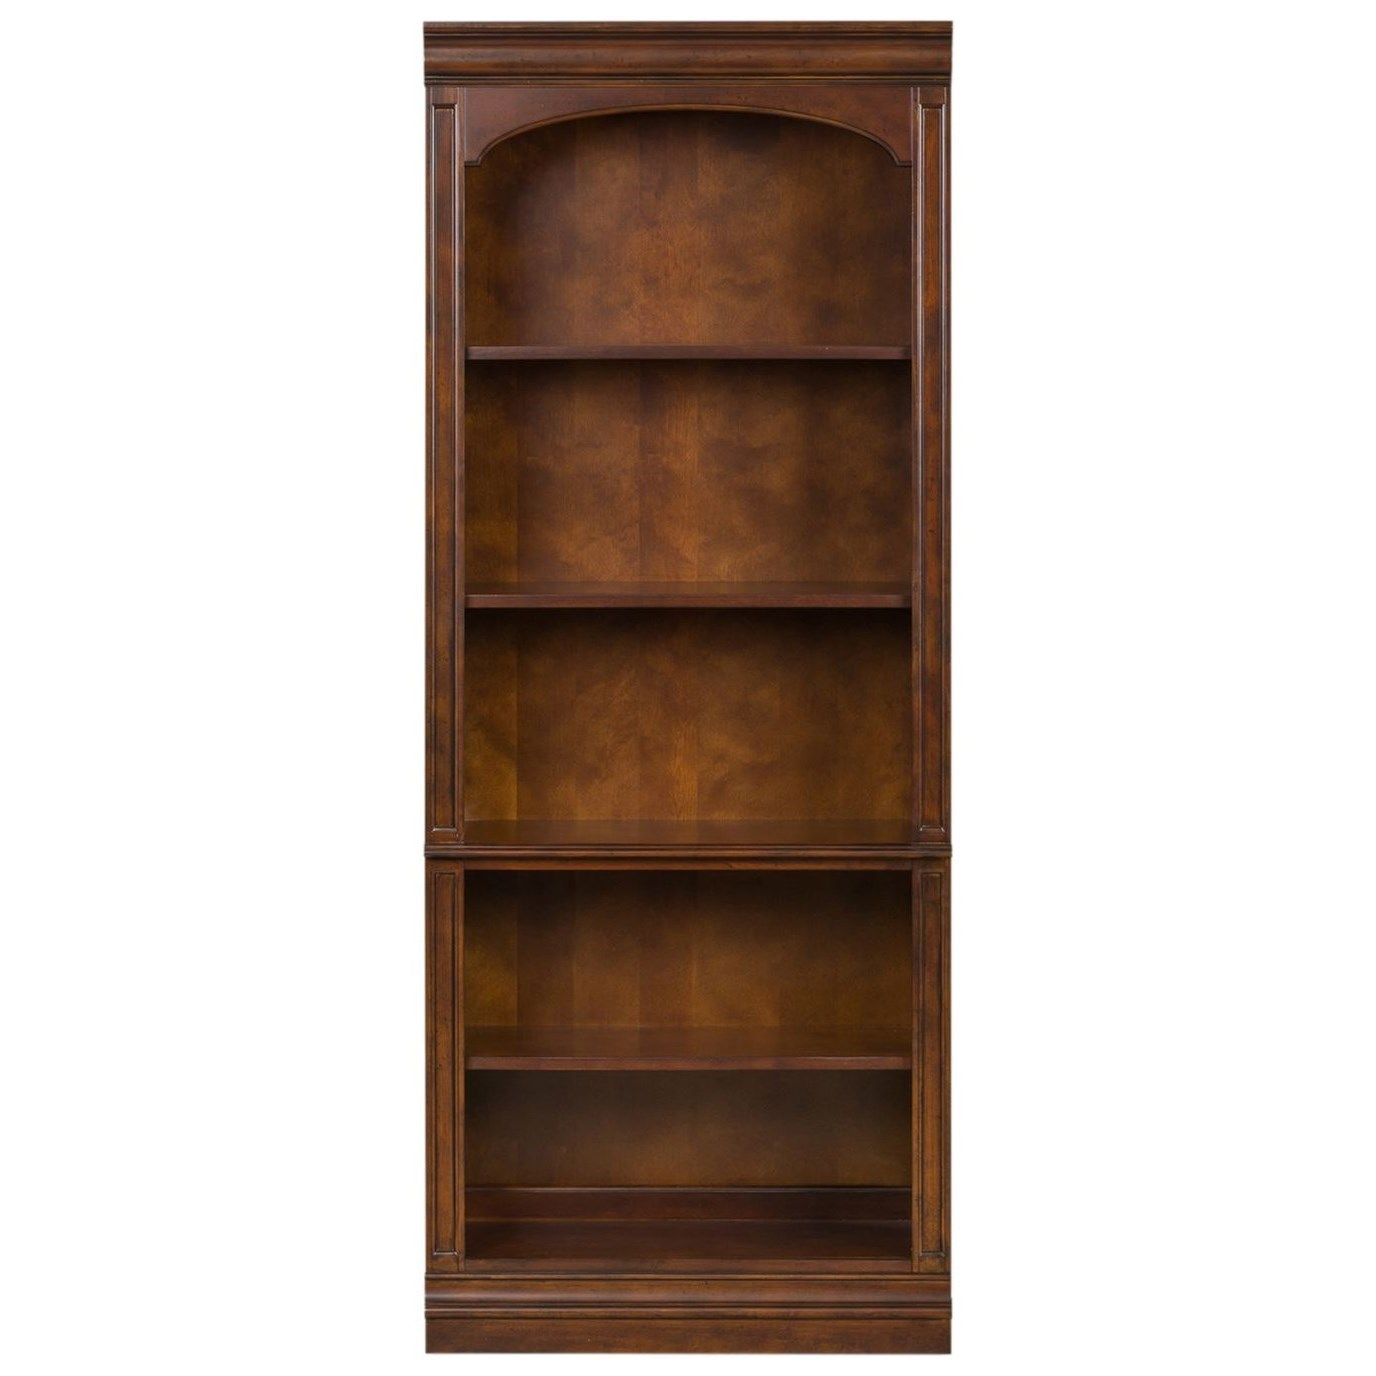 Brayton Manor Jr Executive Open Bookcase by Liberty Furniture at Standard Furniture